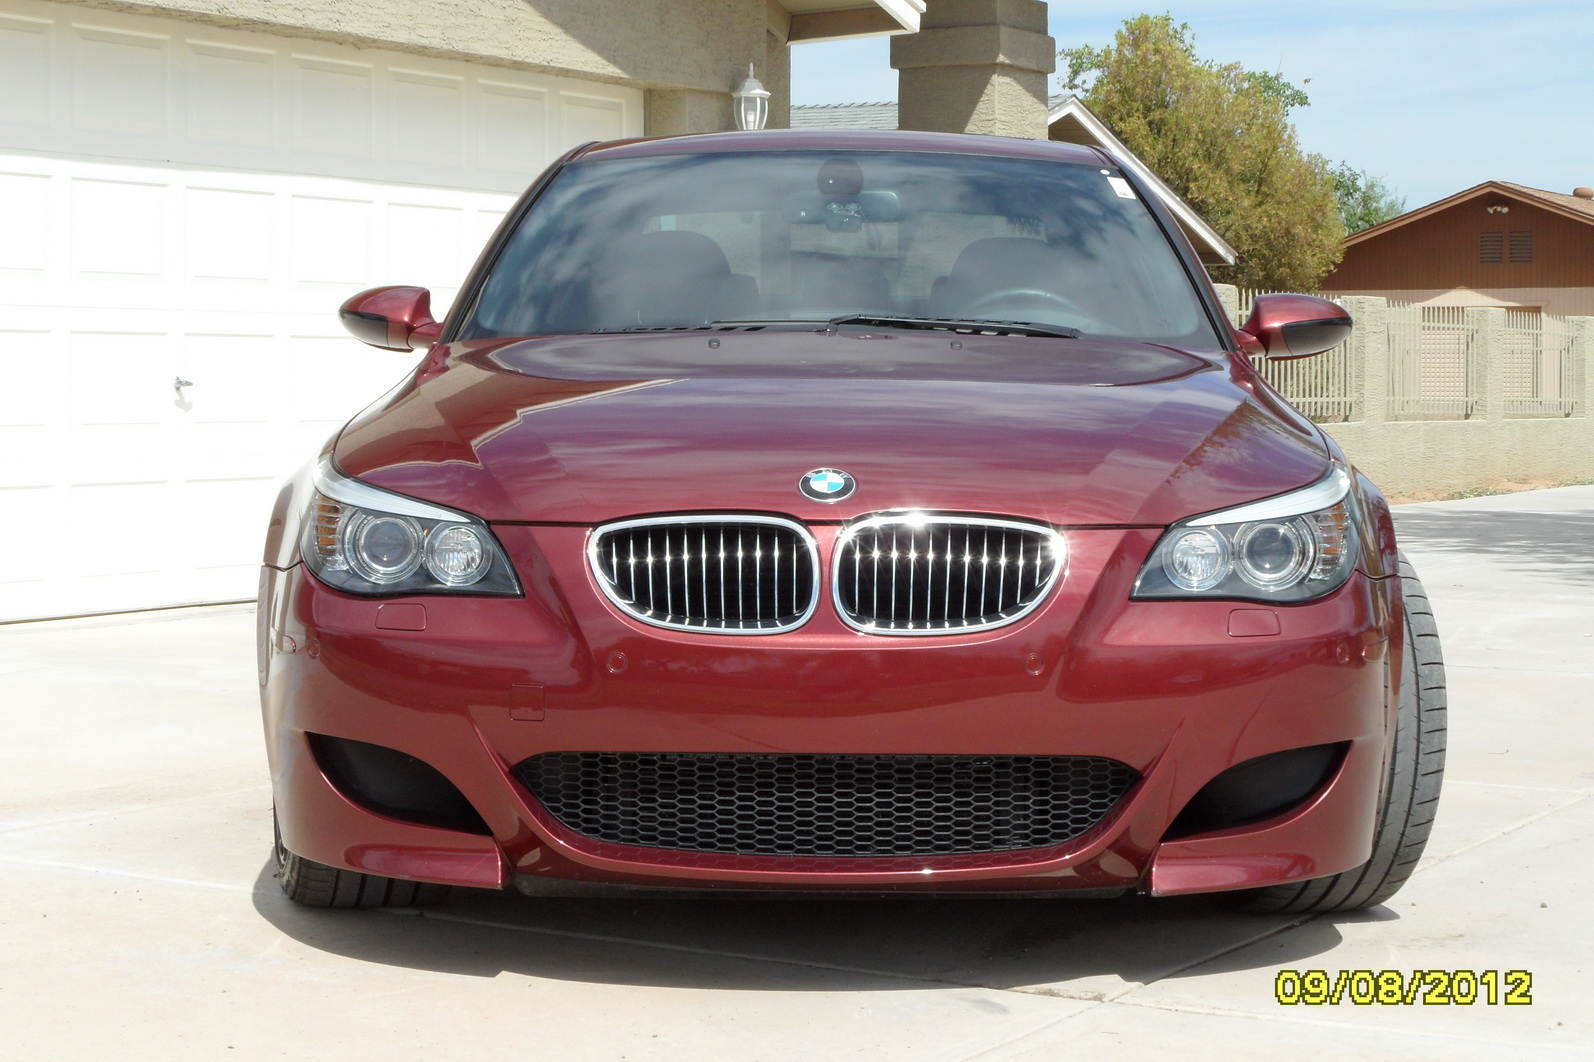 Worksheet. E60 0310 For Sale 08 Indianapolis Red Metallic M5 41k miles